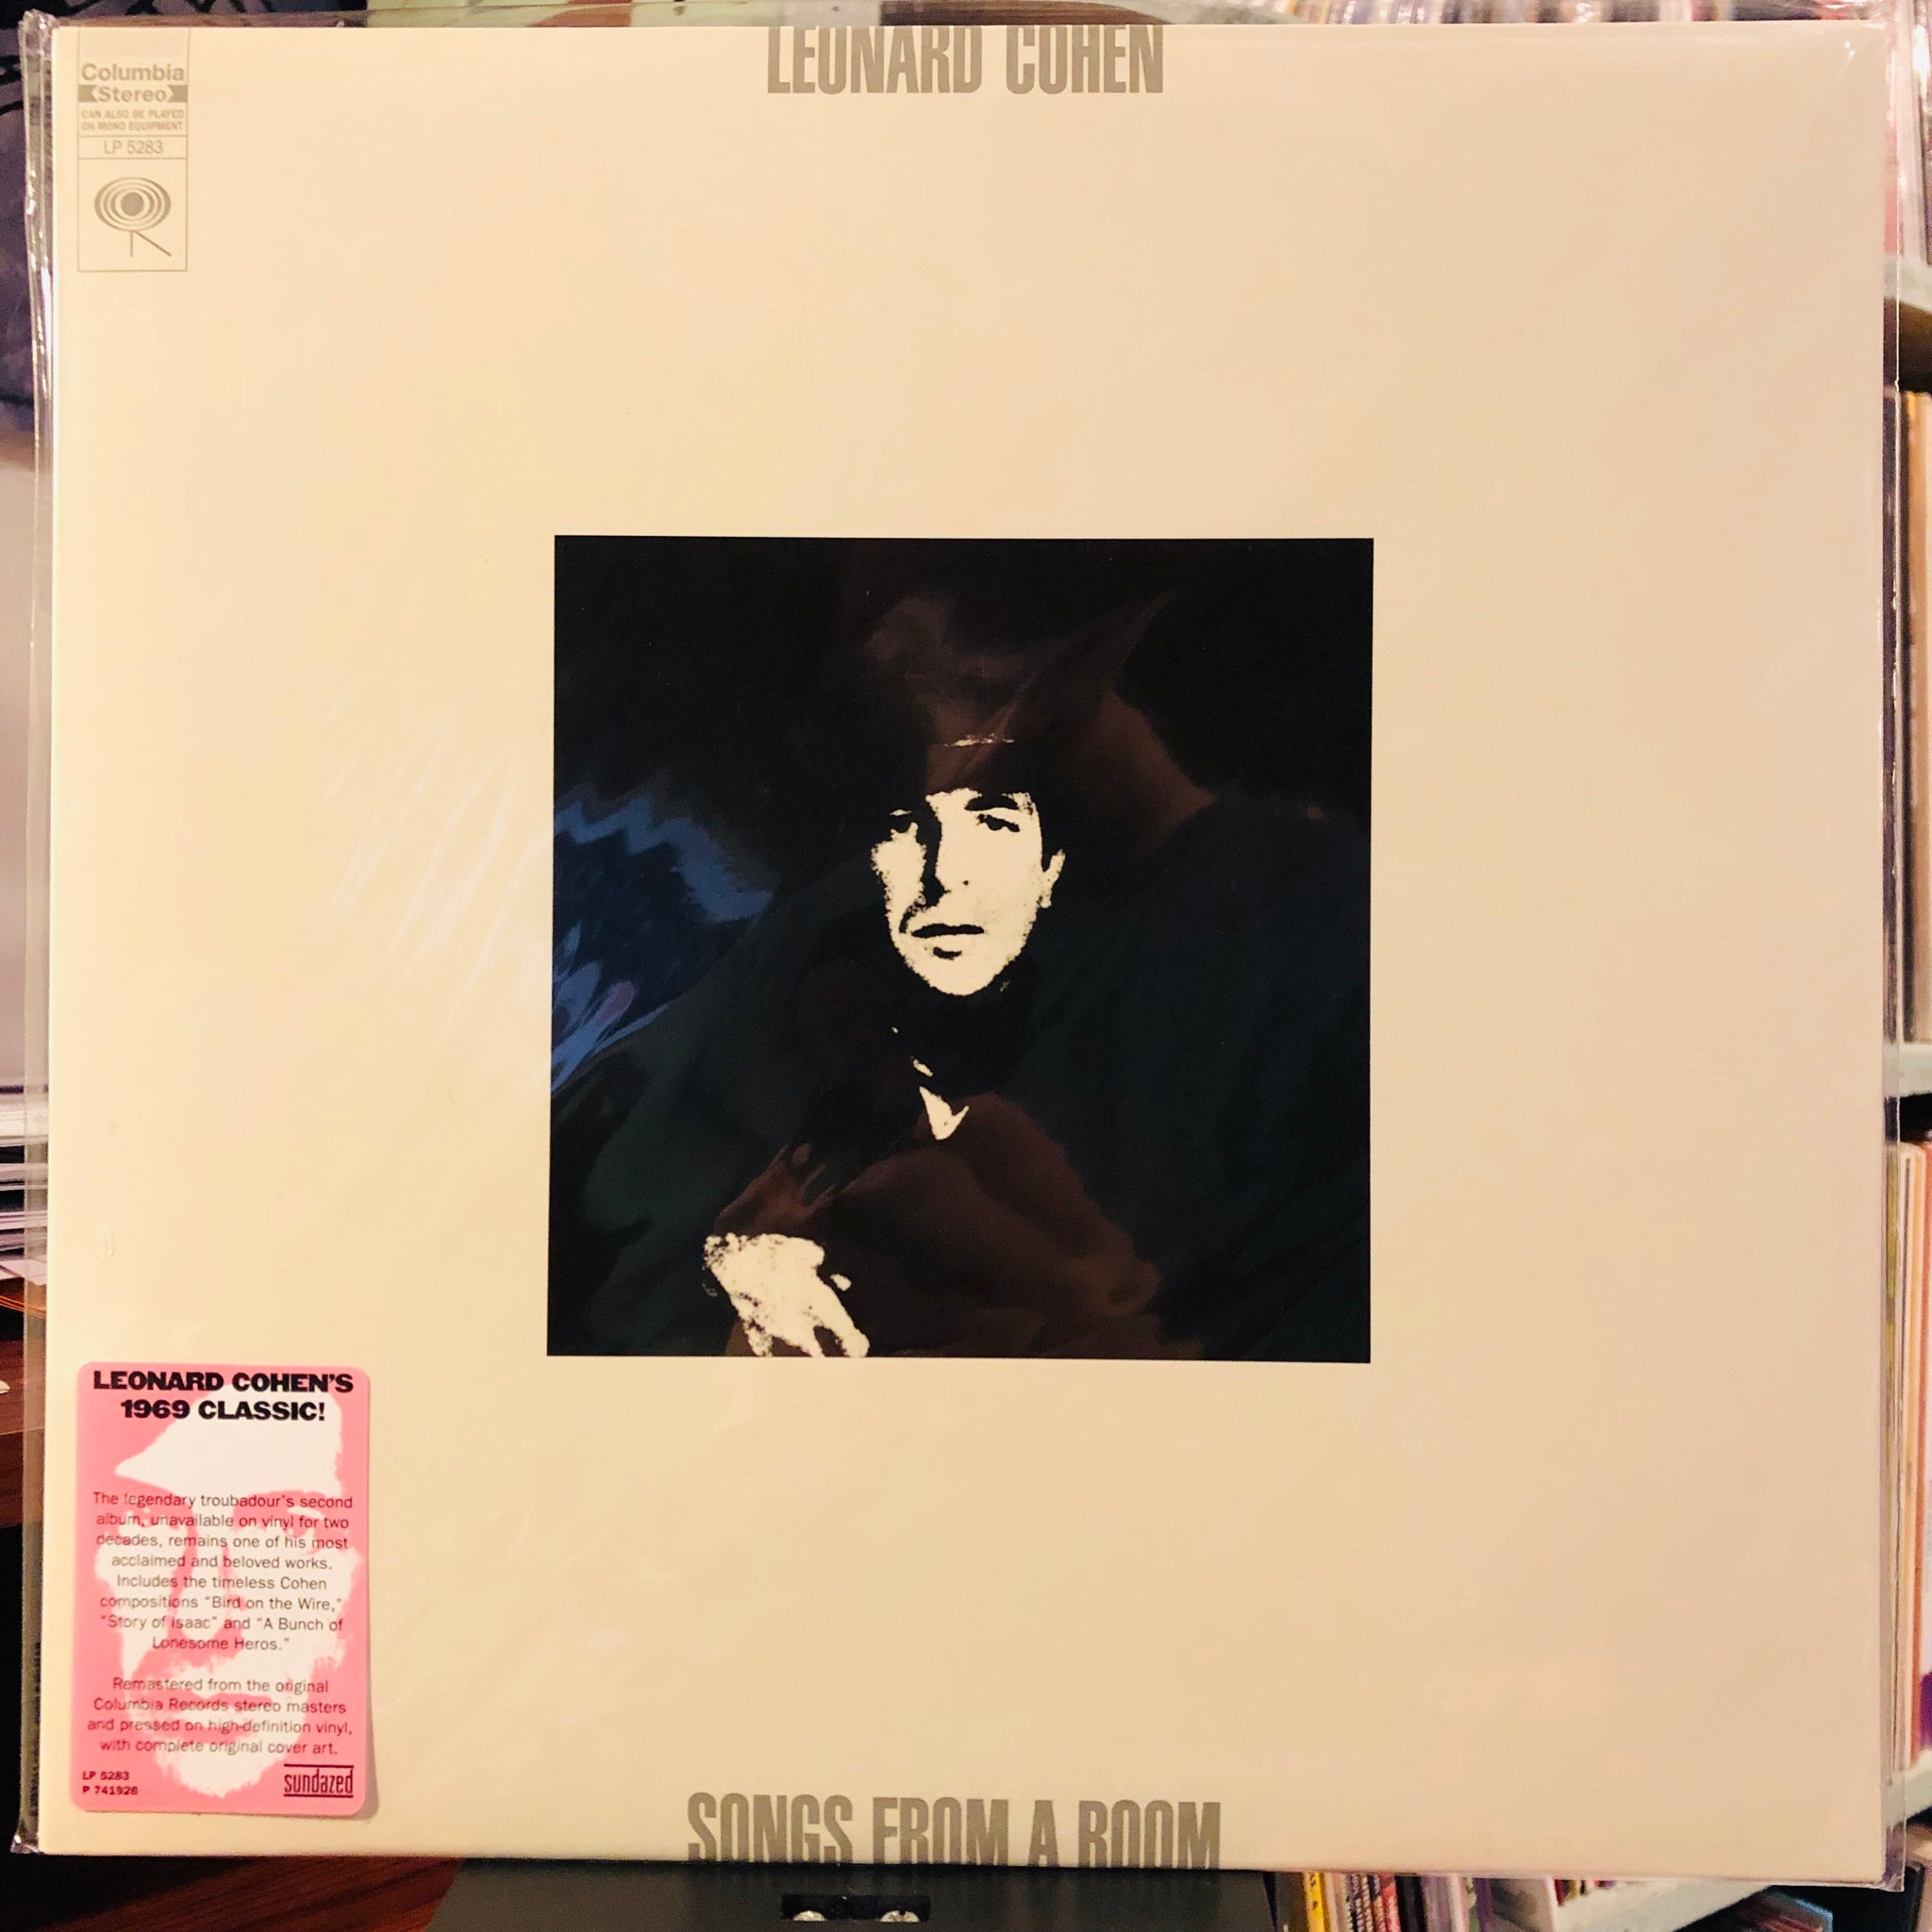 Leonard Cohen ‎– Songs From A Room : Columbia ‎– LP 5283, Sundazed Music ‎– LP 5283 : Vinyl, LP, Album, Reissue, Remastered